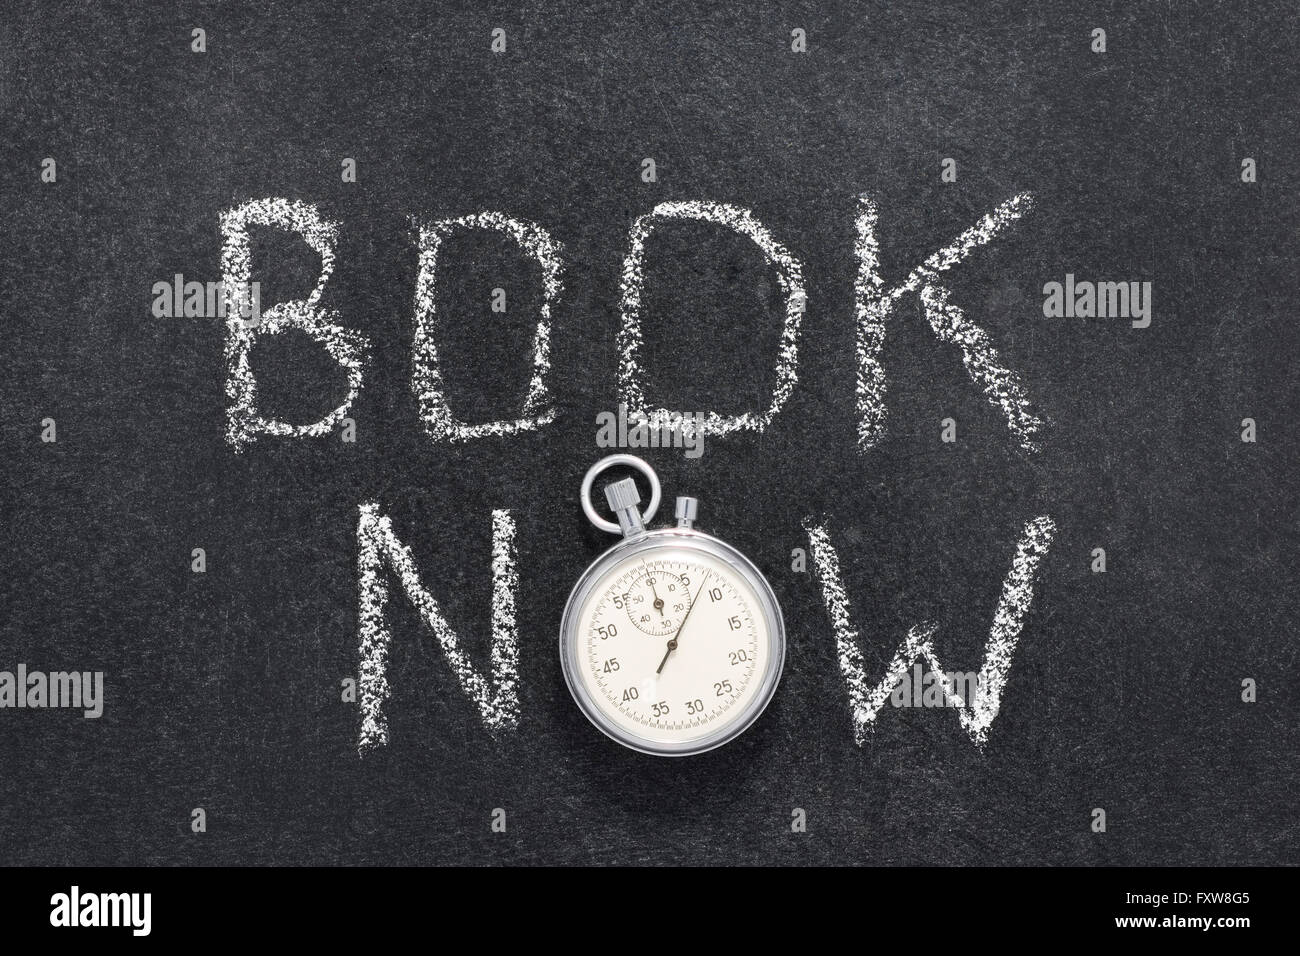 book now watch phrase handwritten on chalkboard with vintage precise stopwatch used instead of O - Stock Image